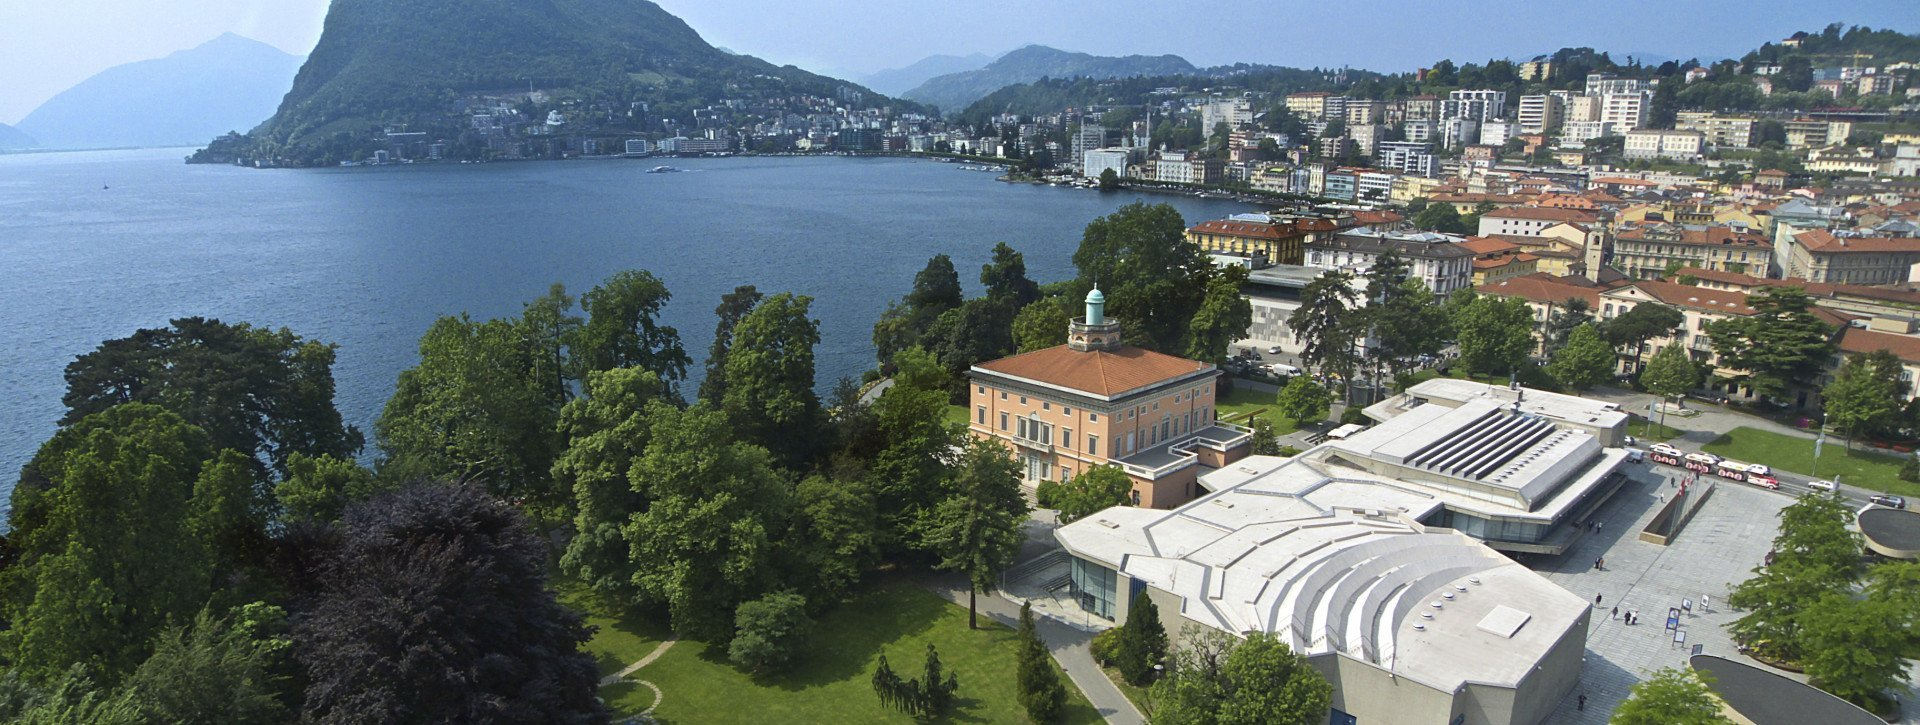 The Convention Centre Lugano is placed at the Lugano Lake